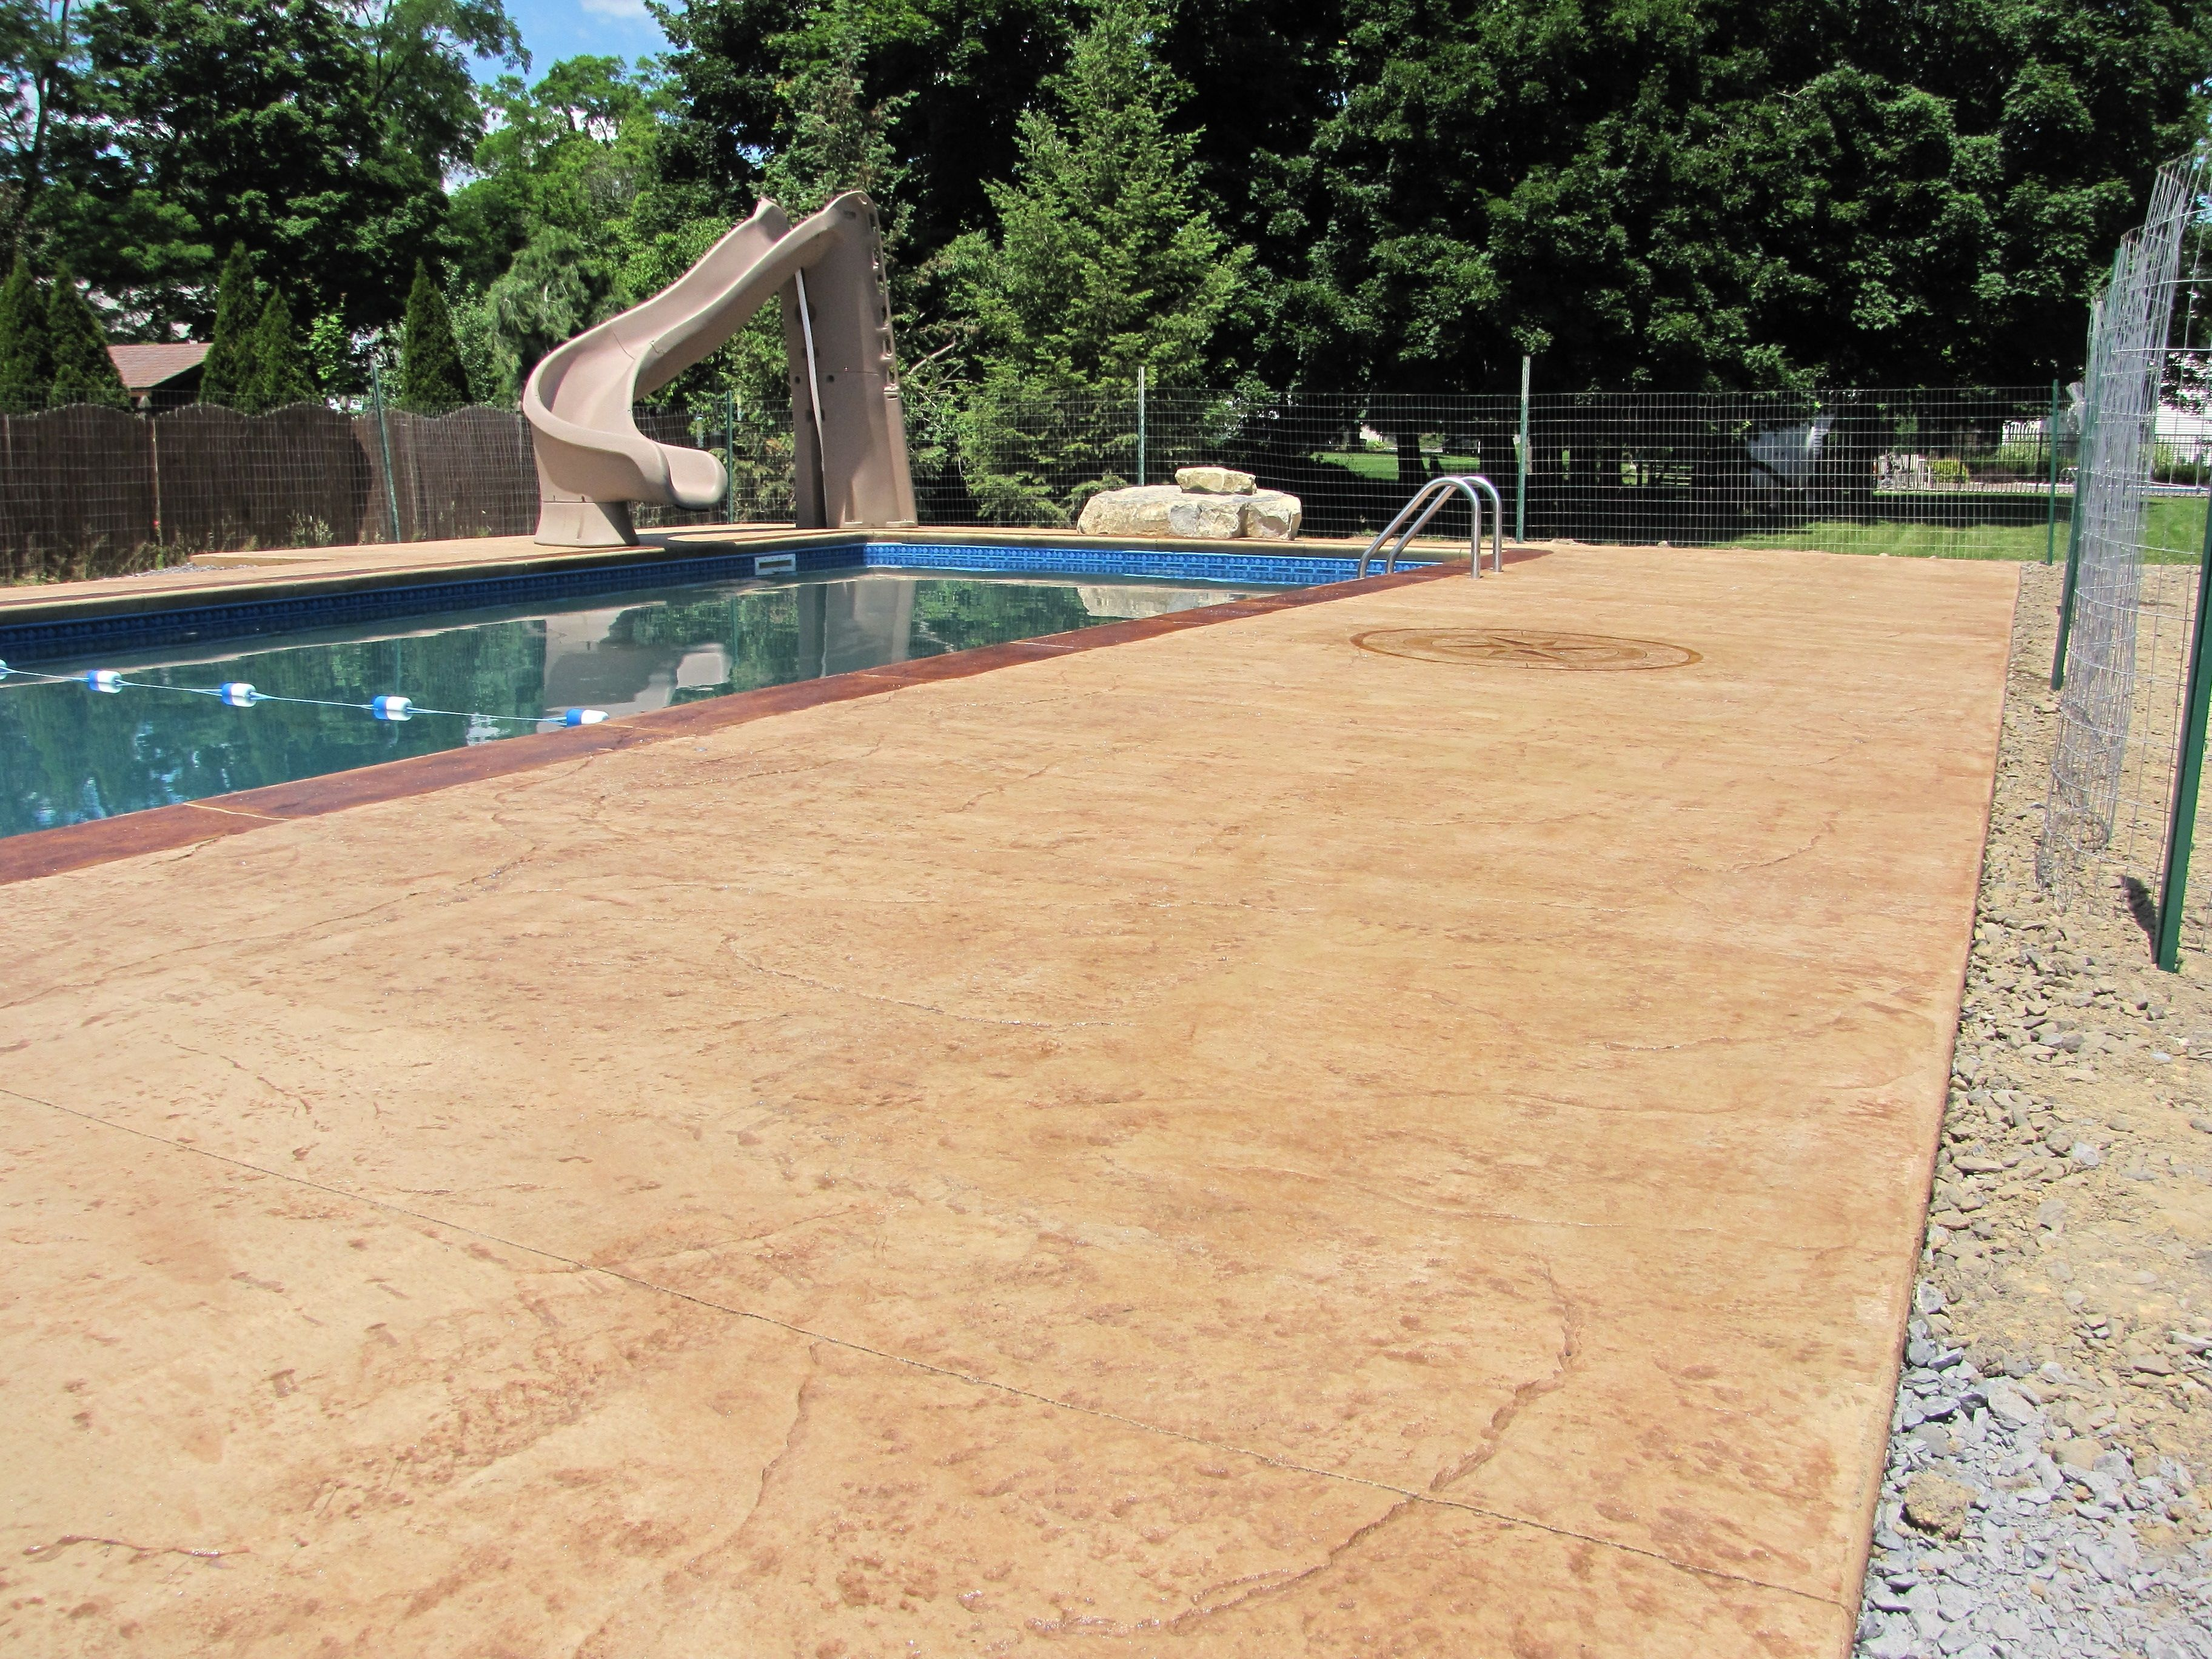 Exceptional Decorative Stamped Concrete Pool Decks Ny Evolution Stamped Concrete Inside  Stained Concrete Pool Deck Renovation.